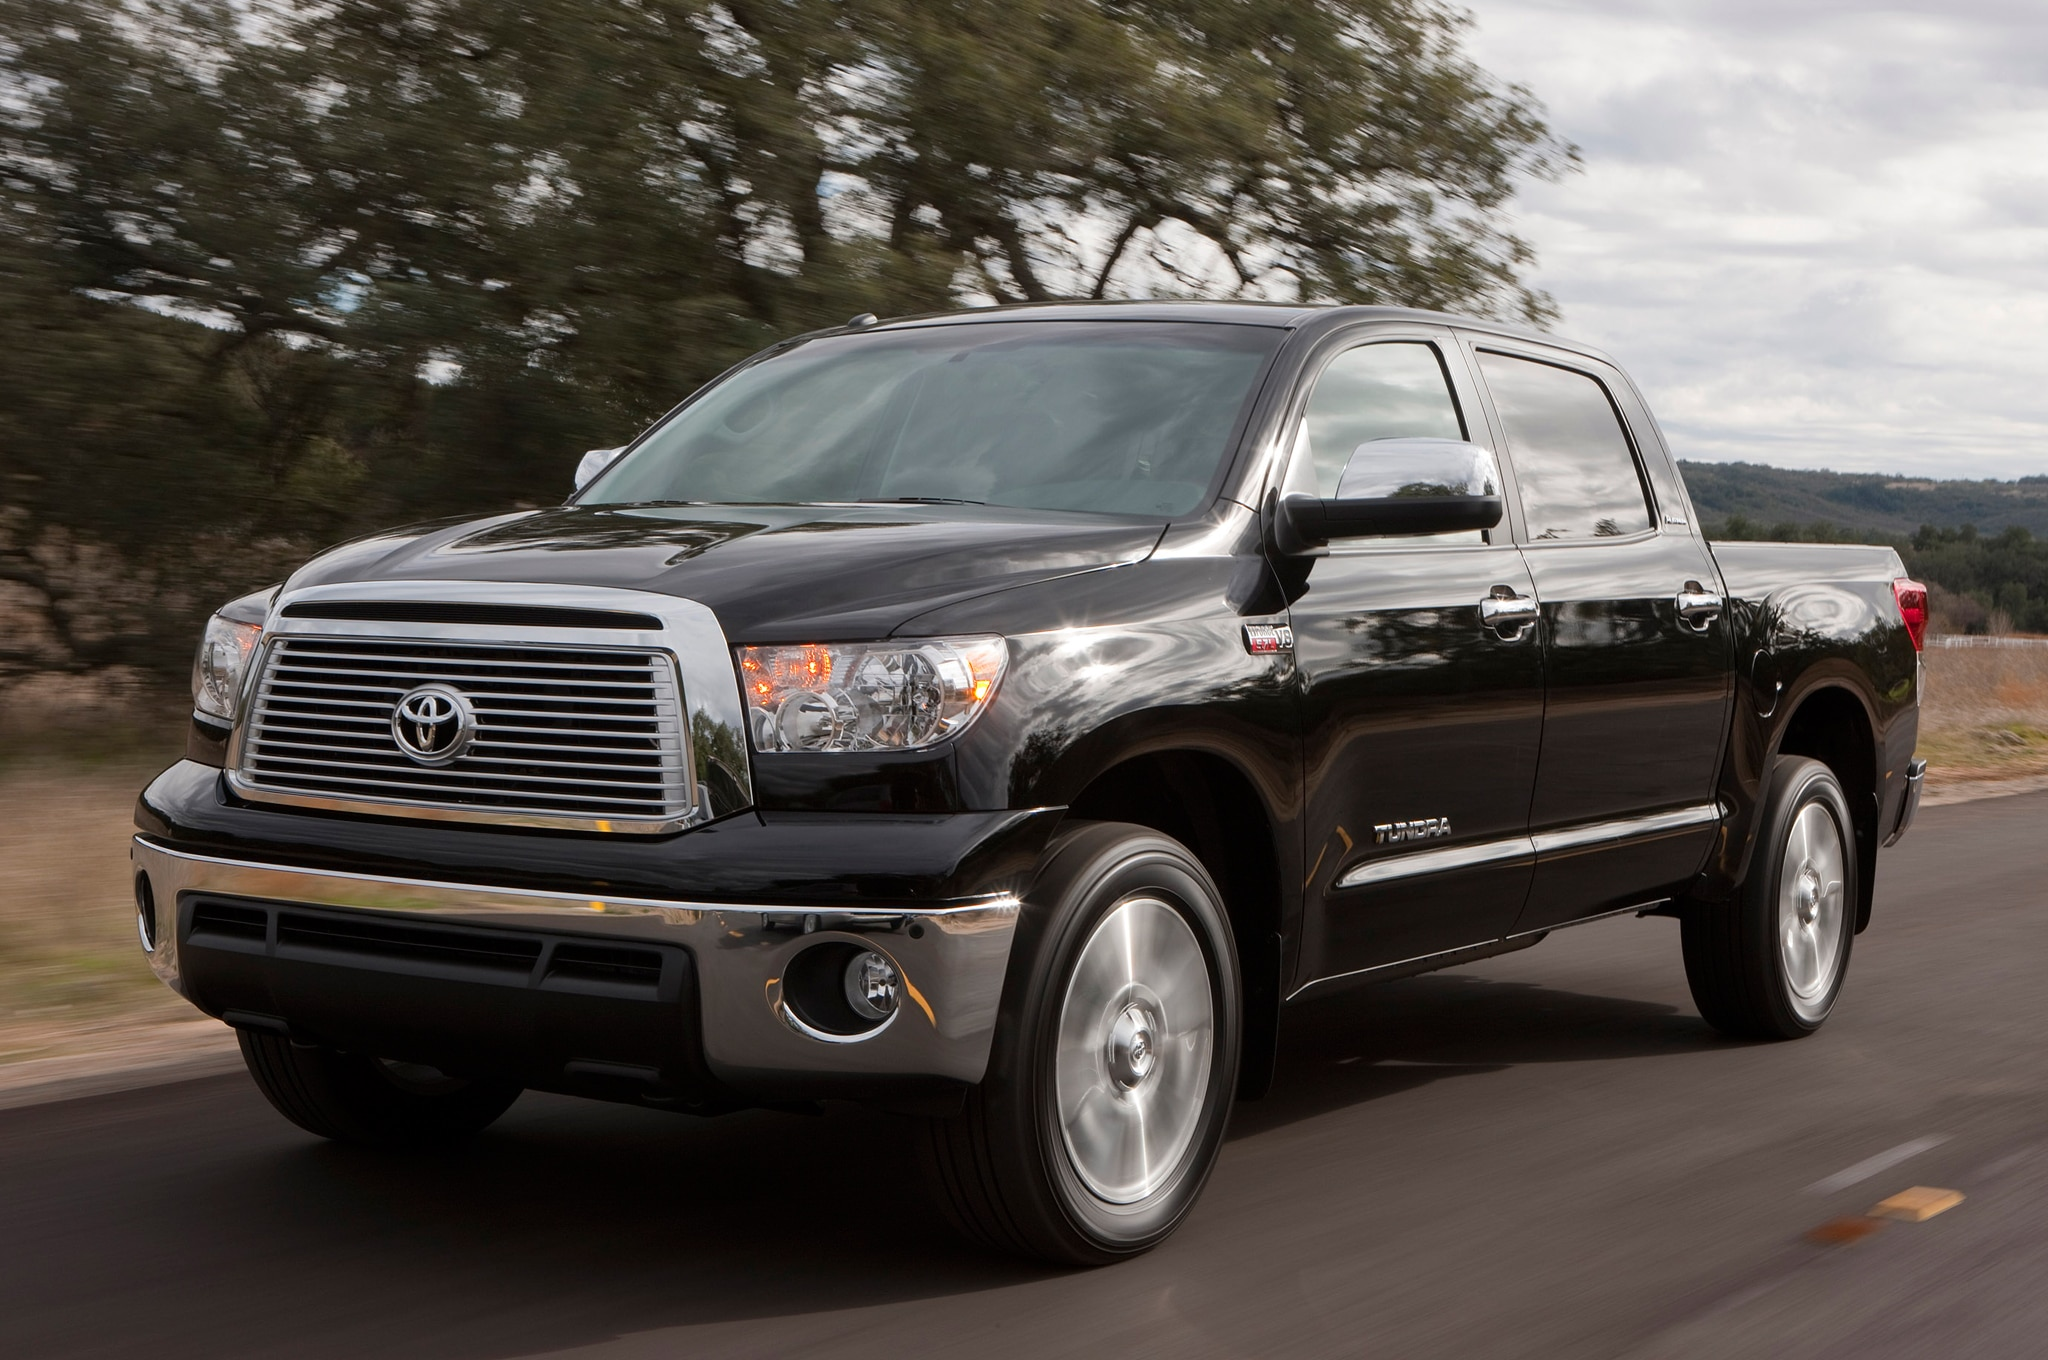 2013 Toyota Tundra Double Cab 4x4 Editors Notebook